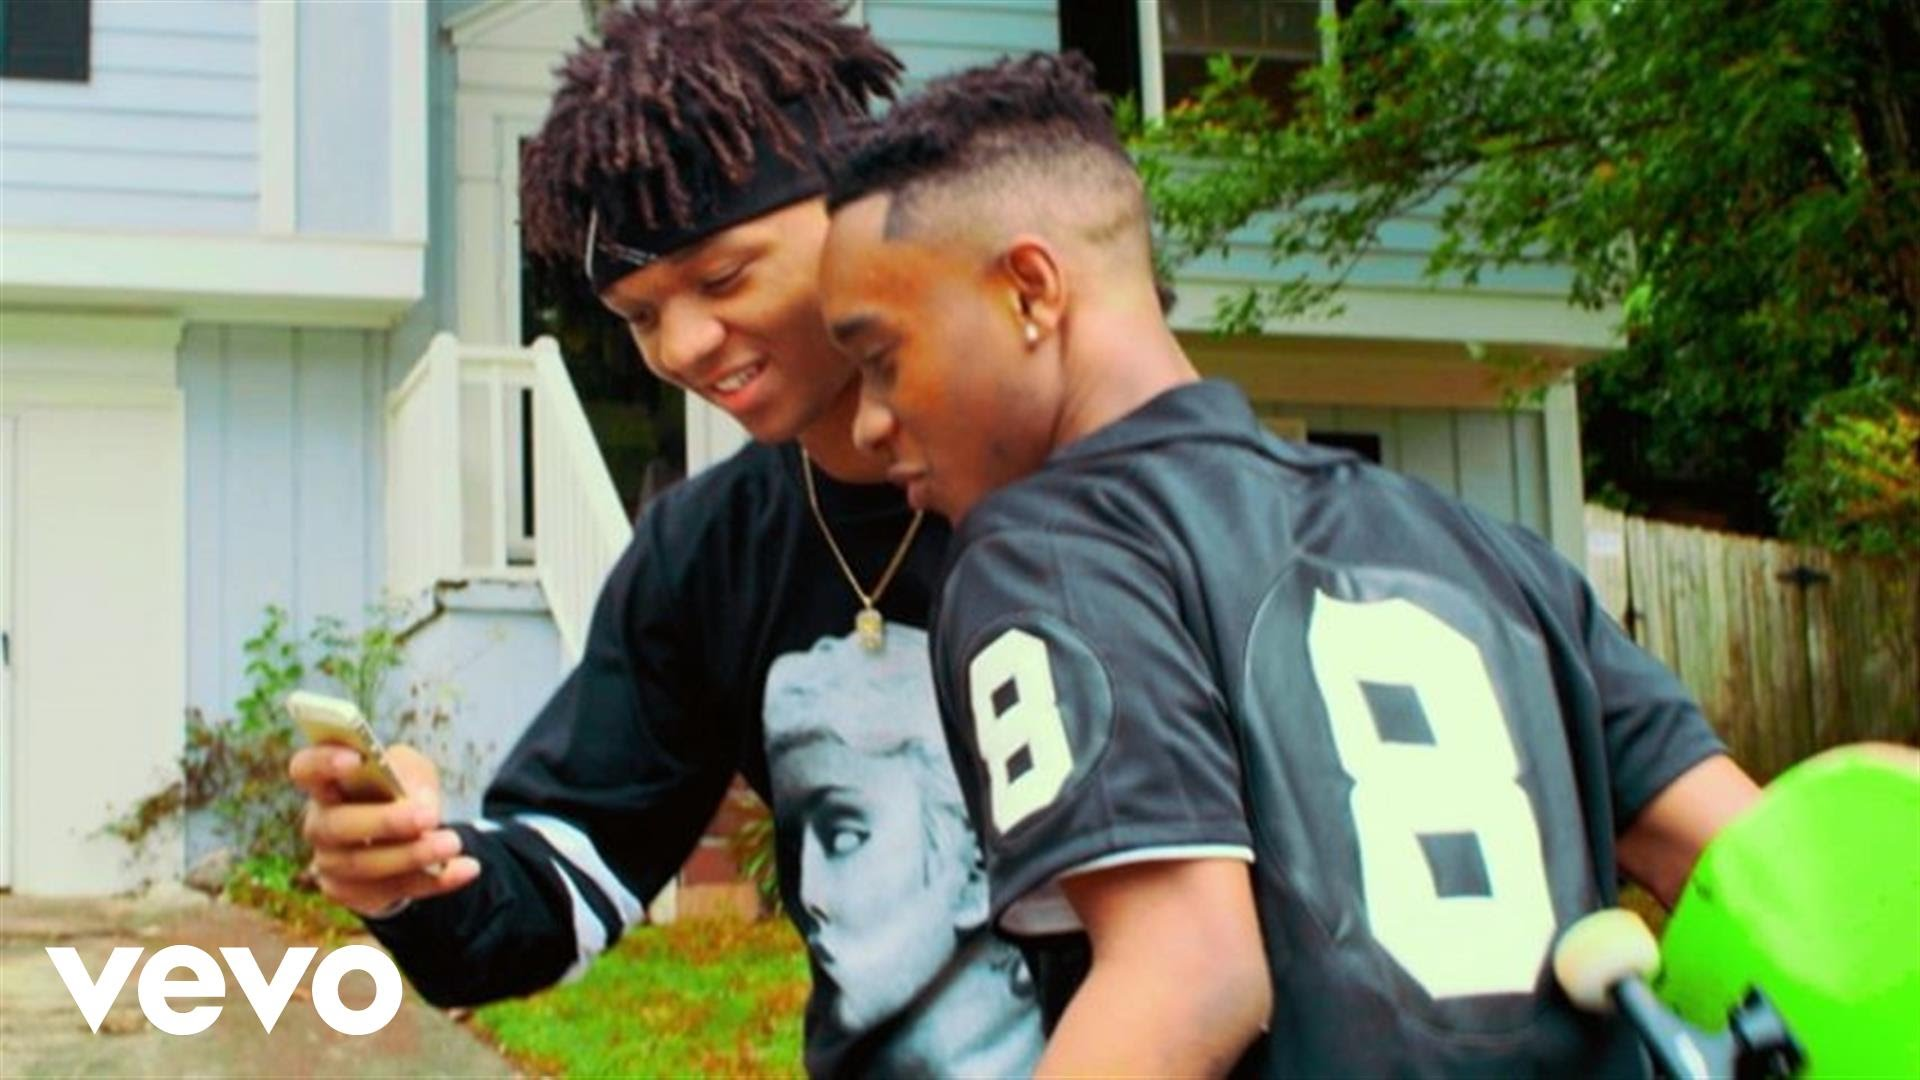 Top 10 best Rae Sremmurd songs